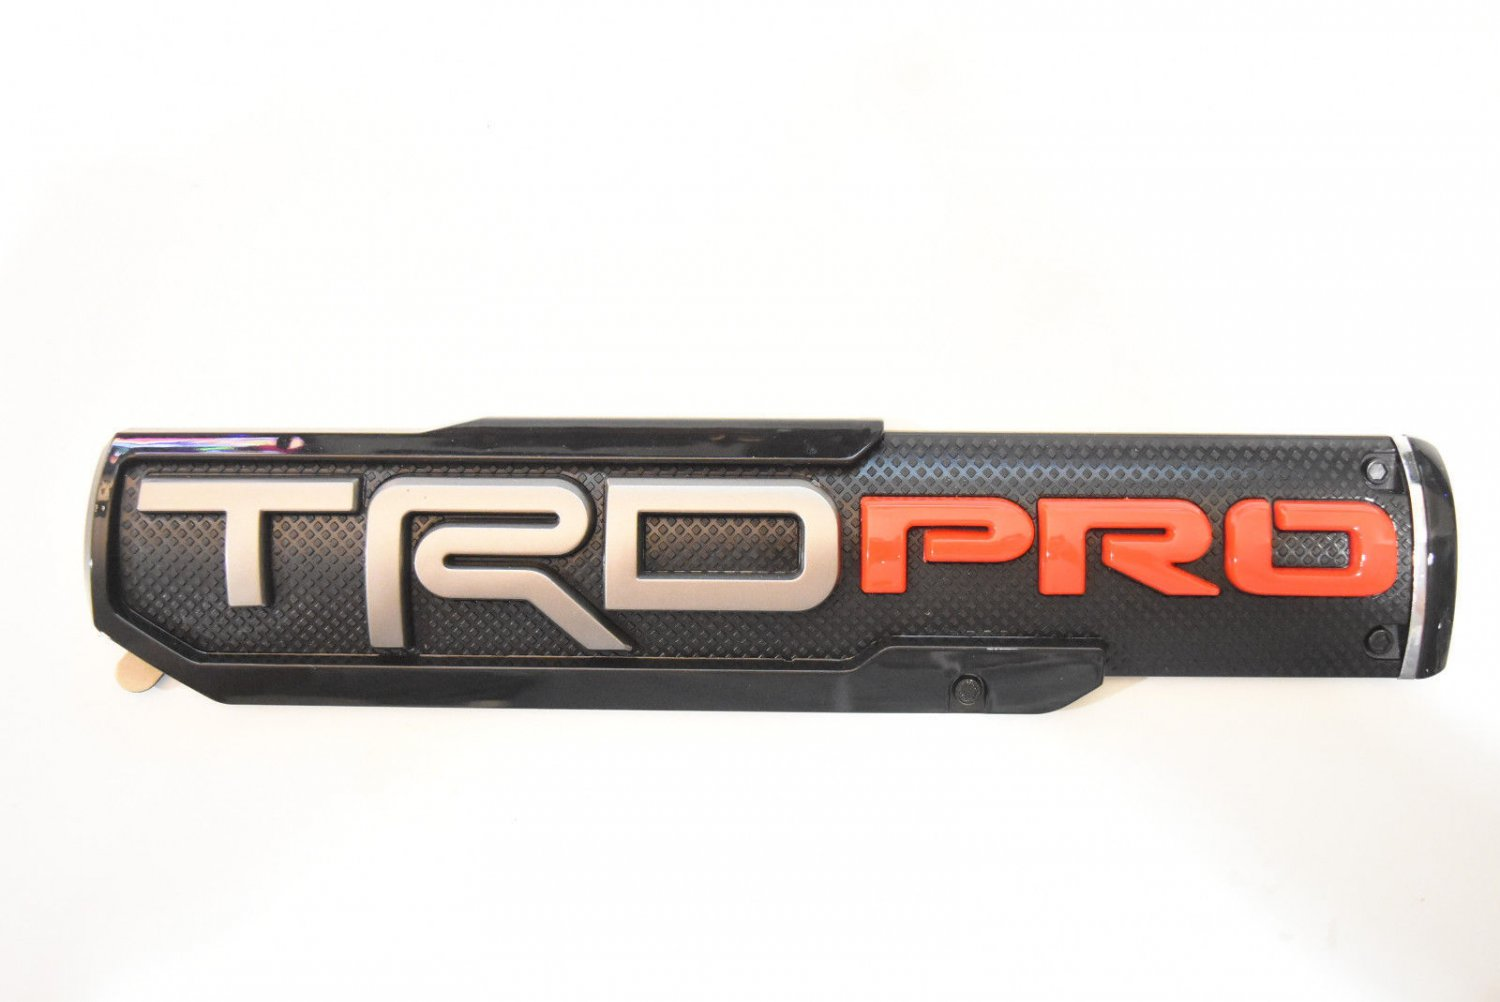 """10"""""""" x 2.25"""""""" ABS Molded TRD PRO Emblem Nameplate Badge For Toyota Tacoma"""